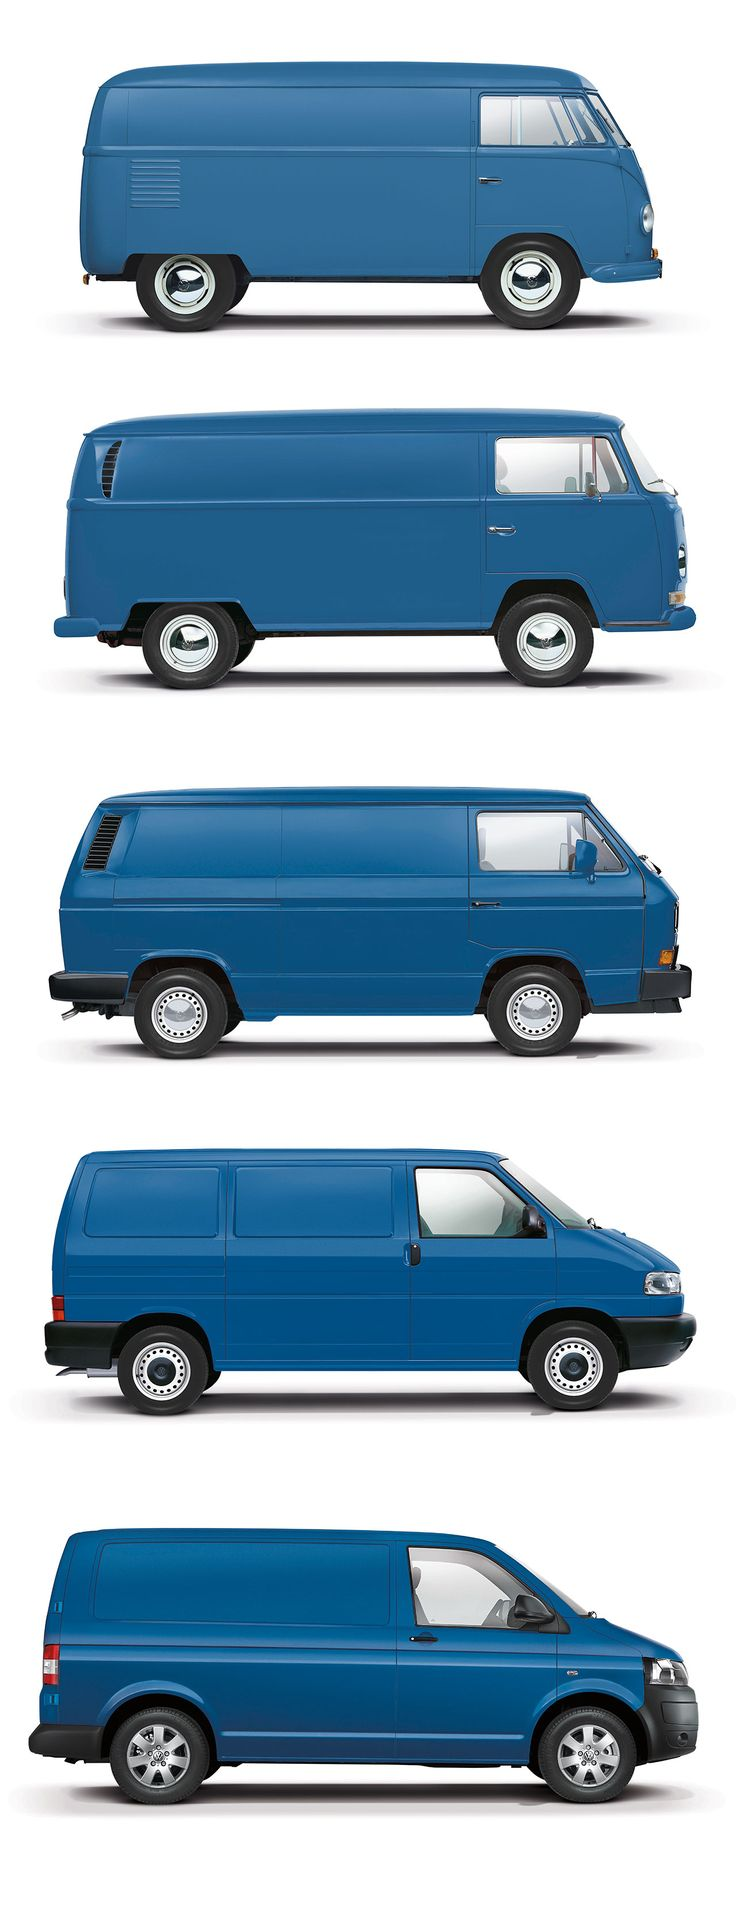 Sixth-gen #Volkswagen Transporter previewed in design render - Car Body Design